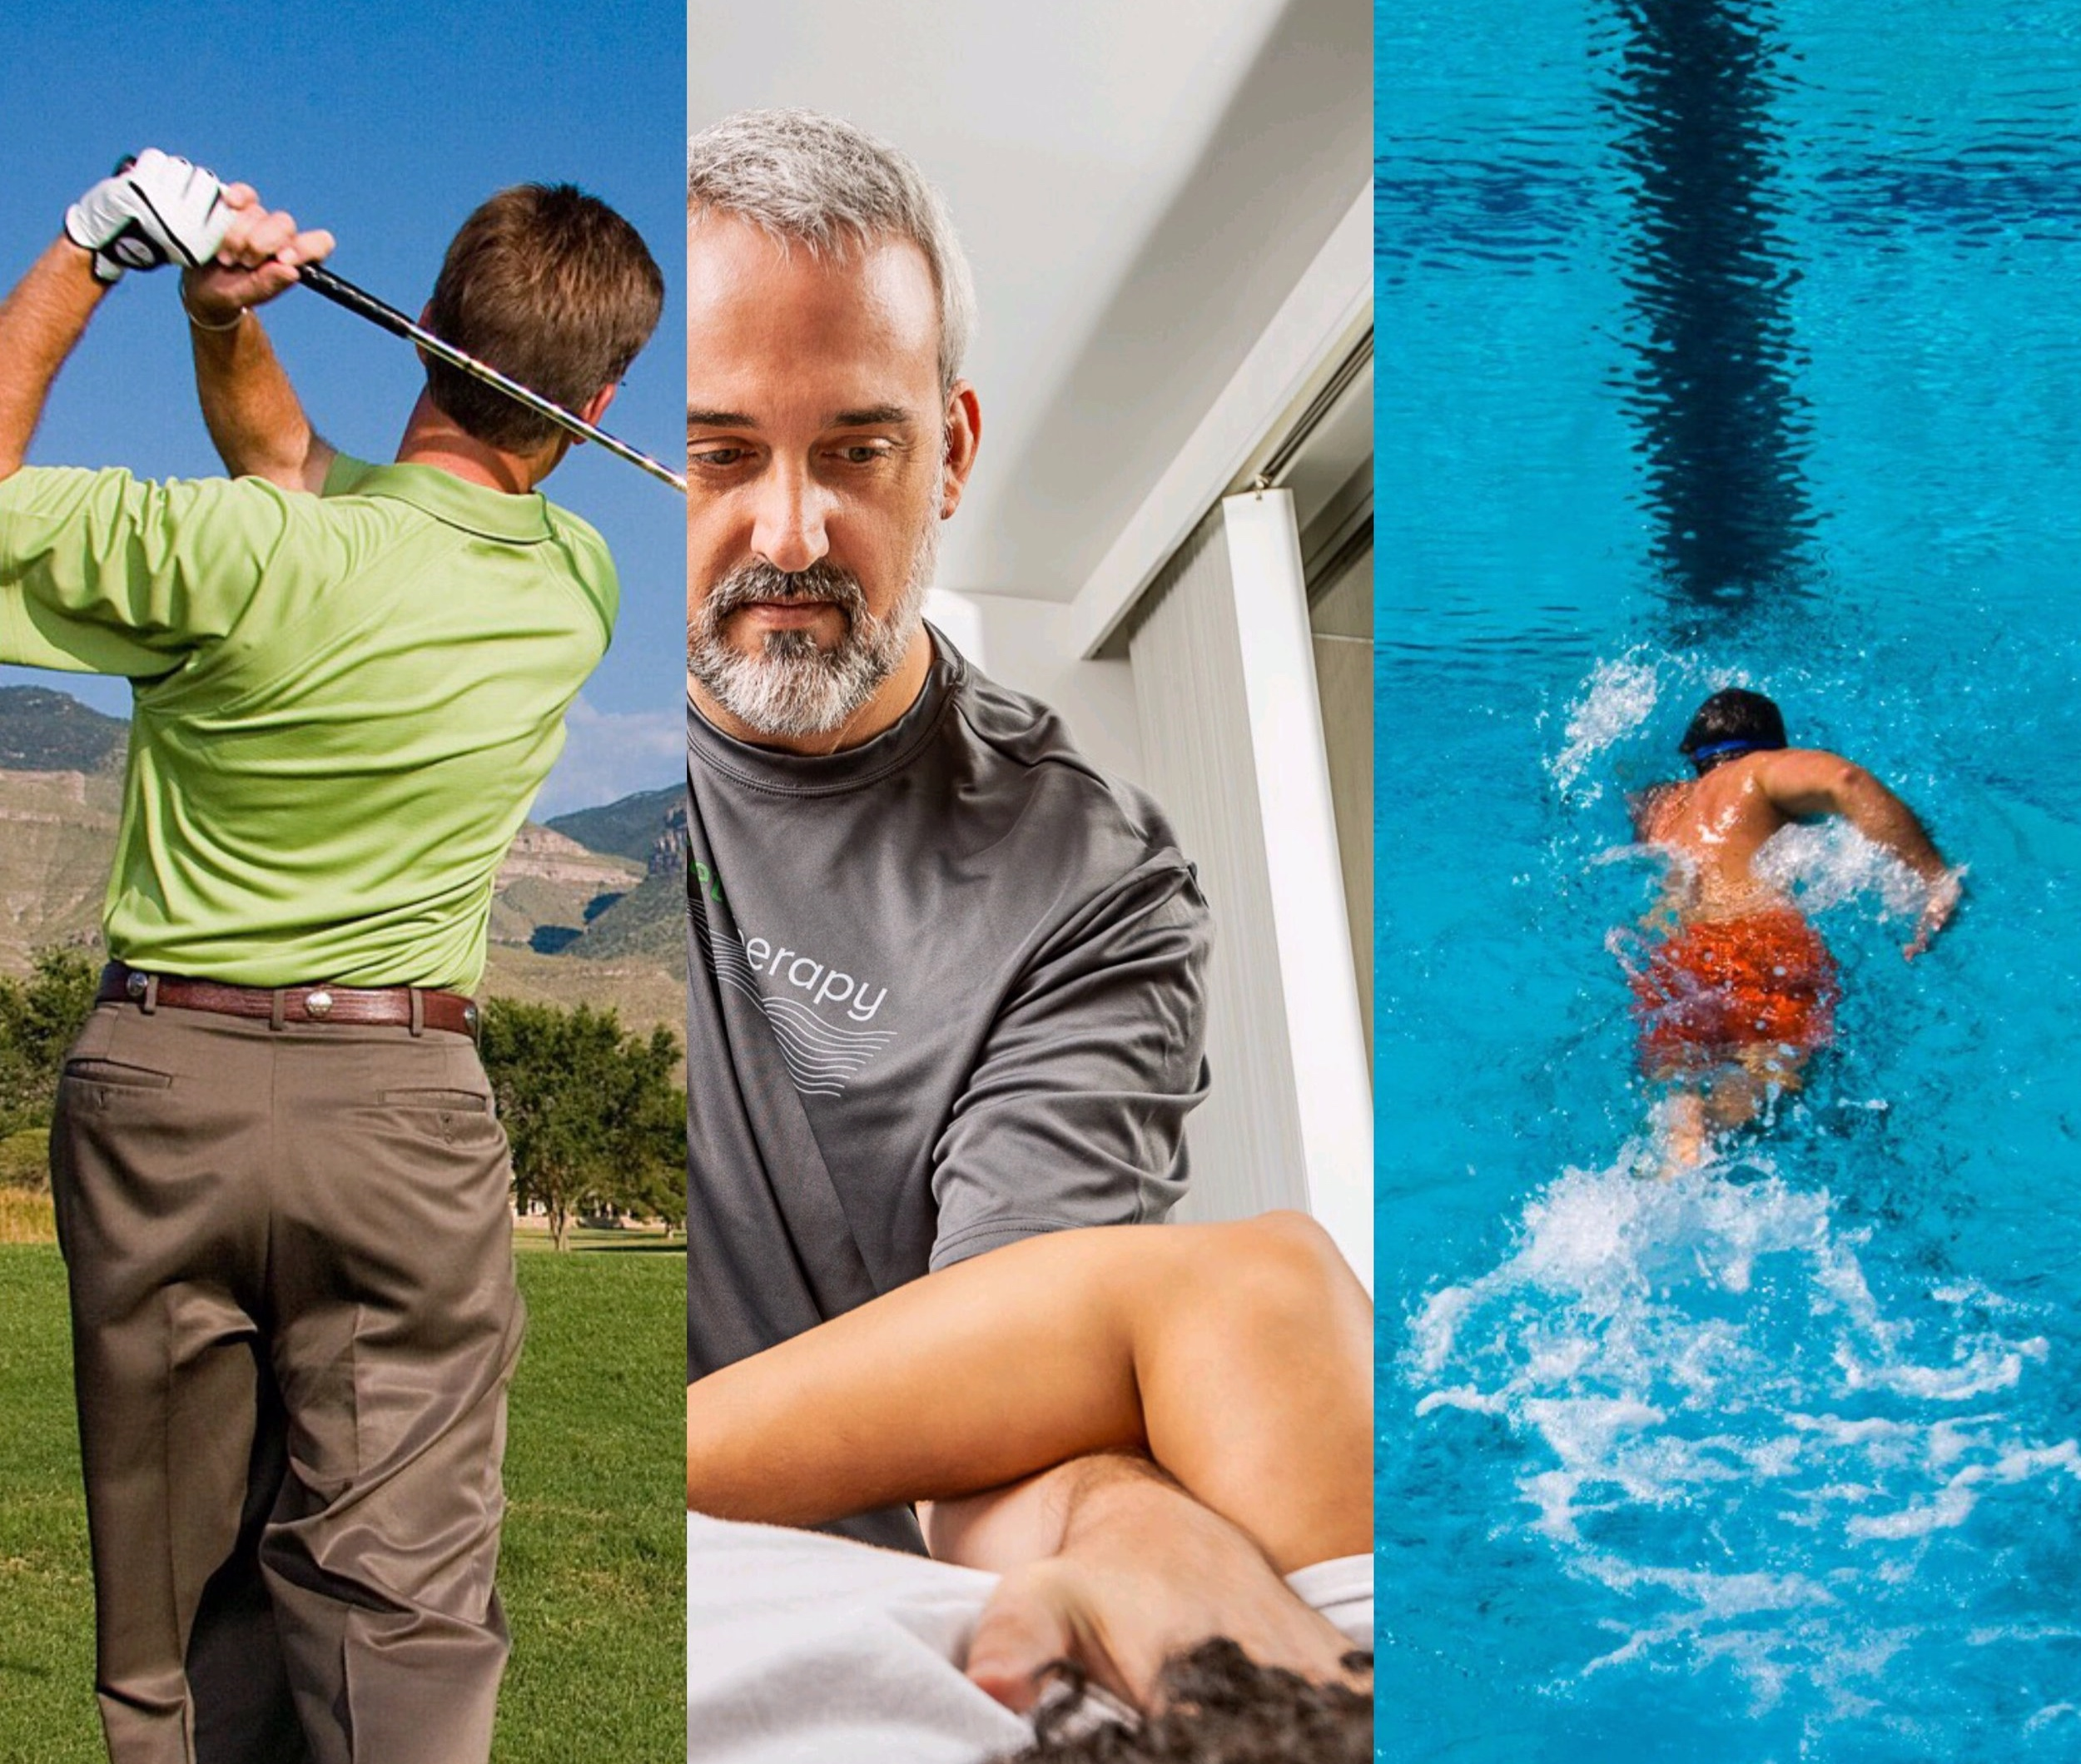 Do you Golf? Swim? or just need to relax? FST can help your game and help gain the competitive edge.